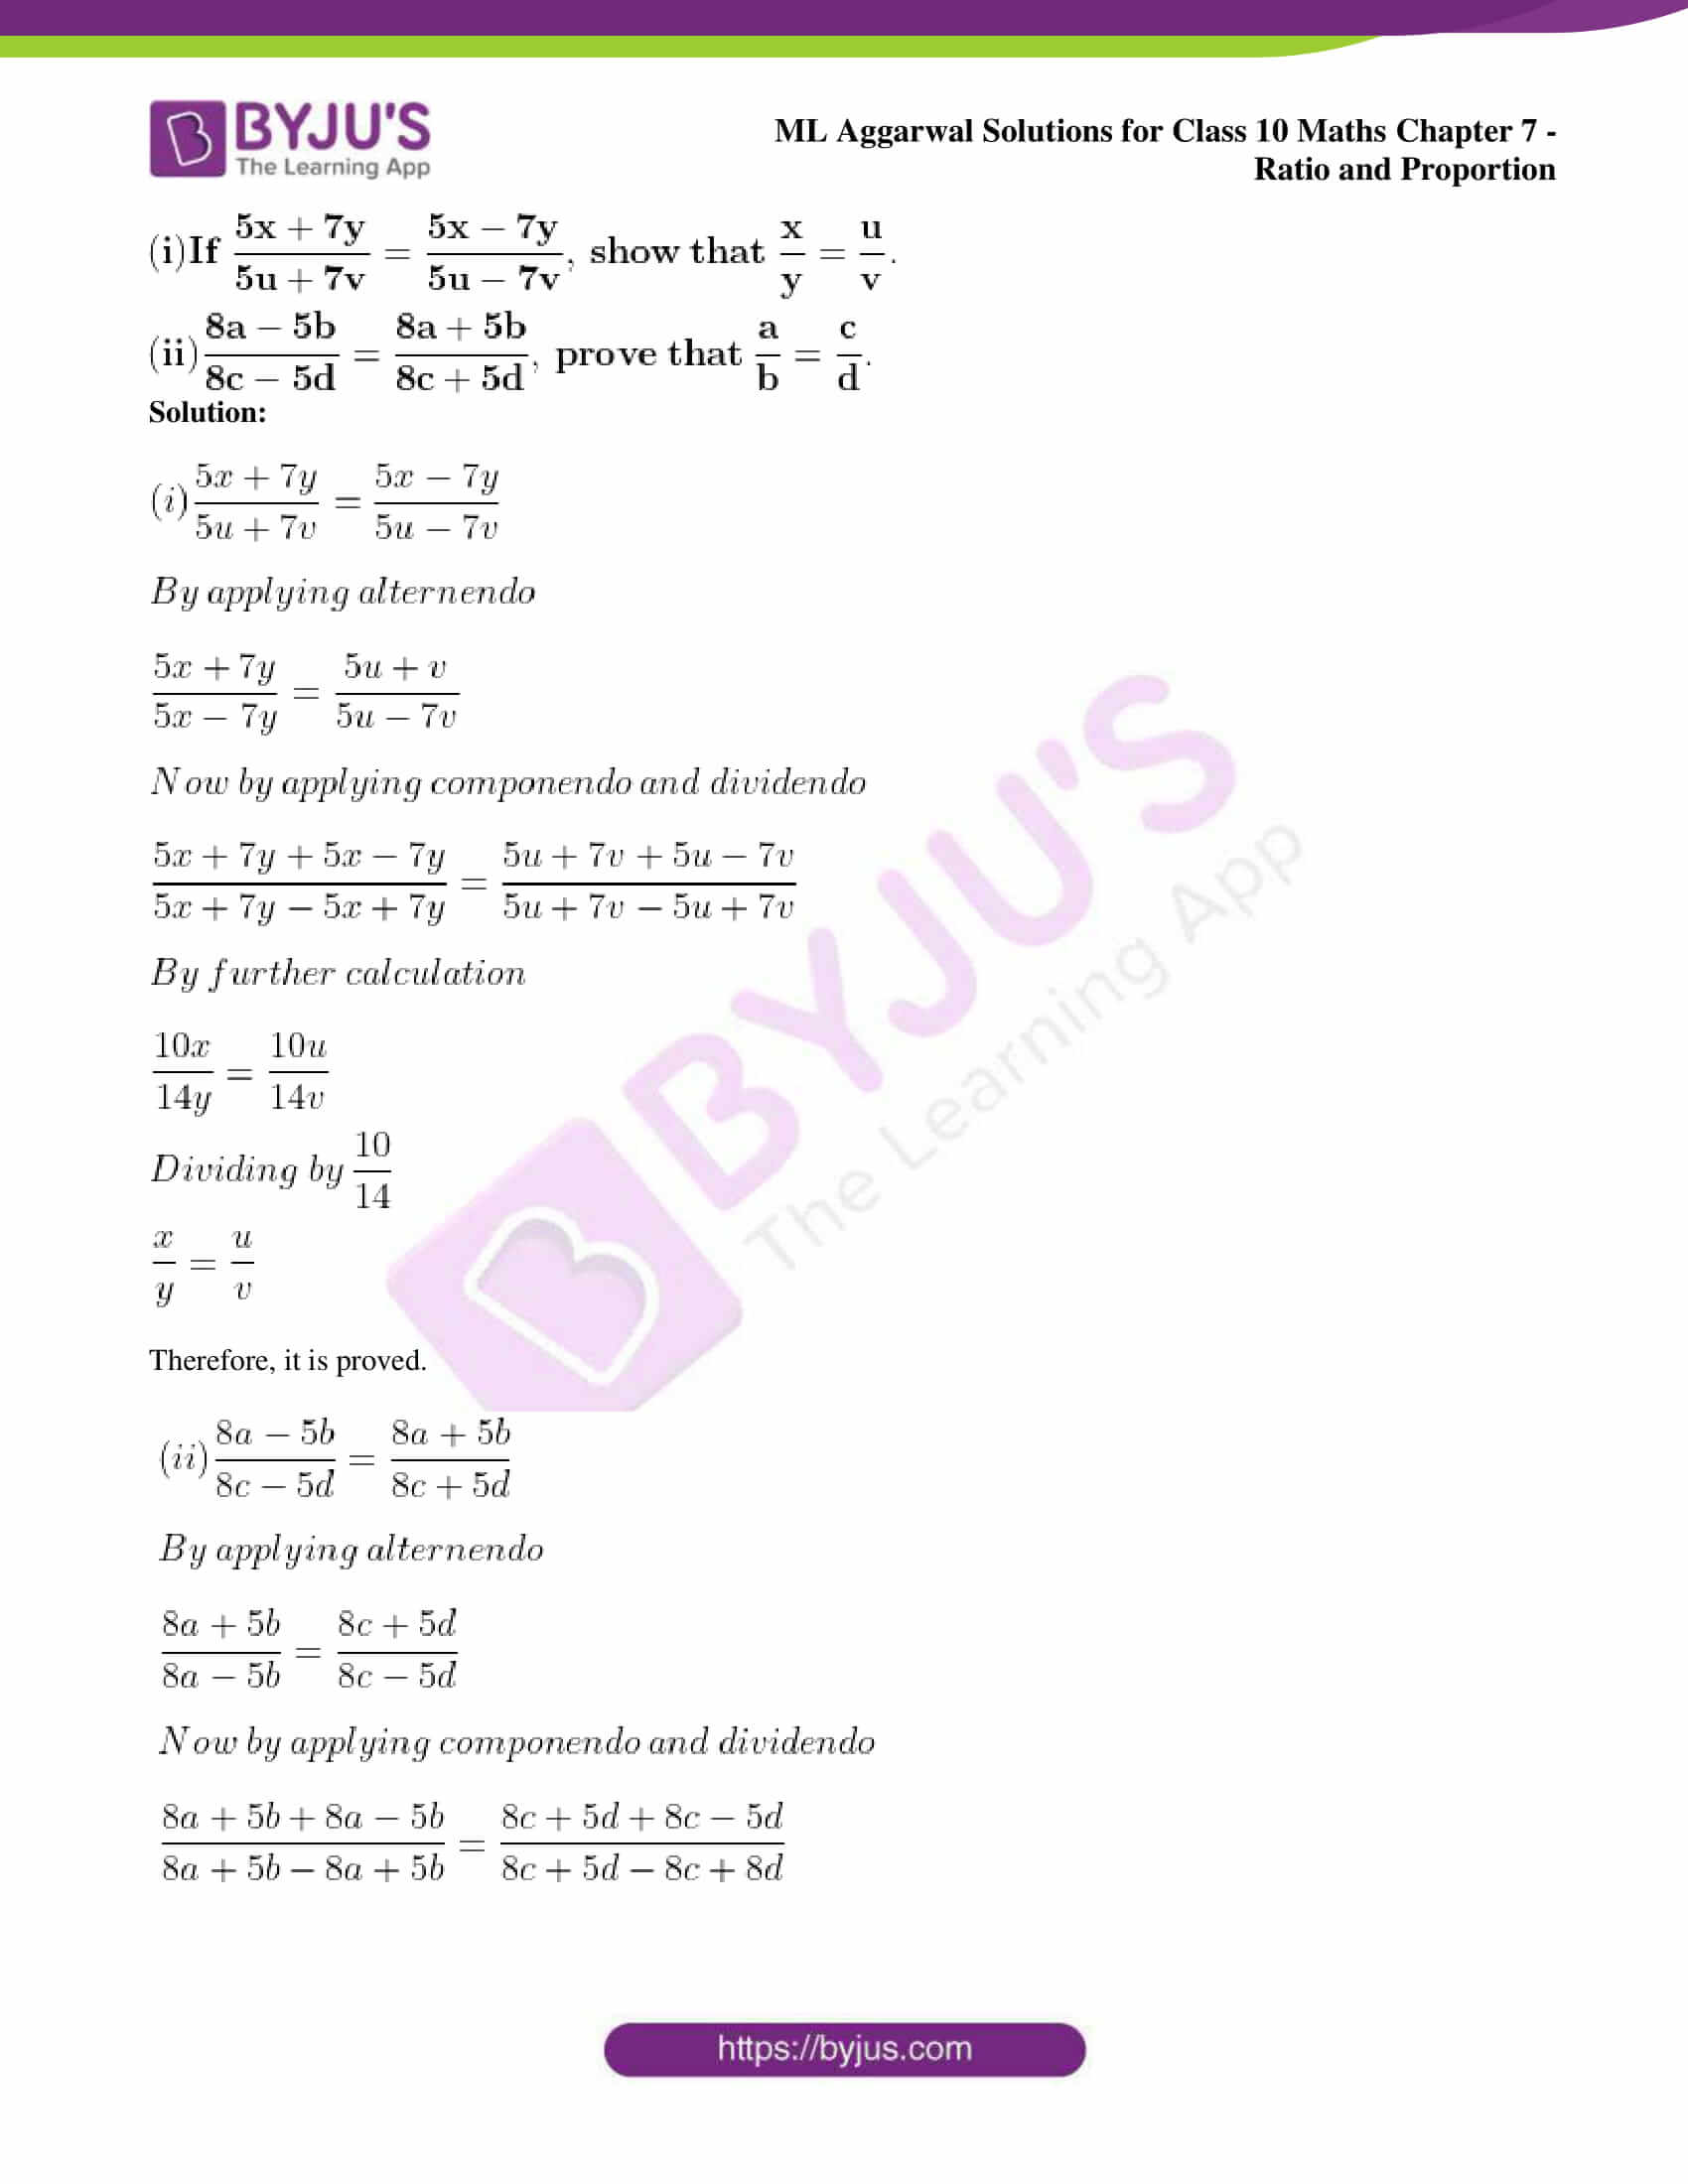 ml aggarwal solutions for class 10 maths chapter 7 46